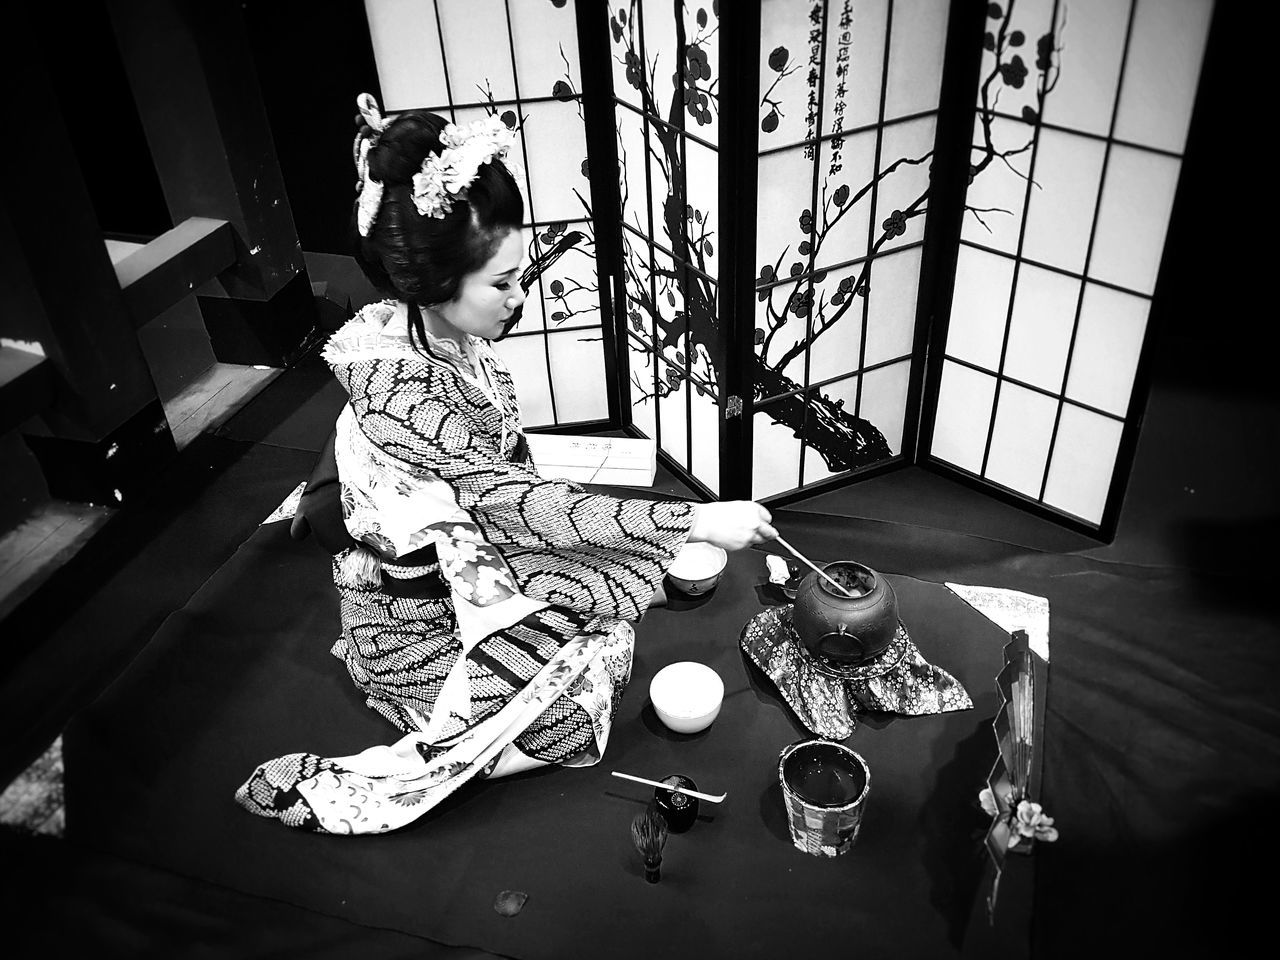 Geisha Ceremony Of Tea Tradition Woman Power Traditional Clothing Japan Photography Japanese Traditional BW Collection Woman Portrait Japanese  Japan Black And White Portrait Japanese Culture Portrait Blackandwhite Black & White Women Who Inspire You Lifestyles Old-fashioned Blackandwhite Photography EyeEm New Here Week On Eyeem Japanese Style Women Of EyeEm Women Around The World